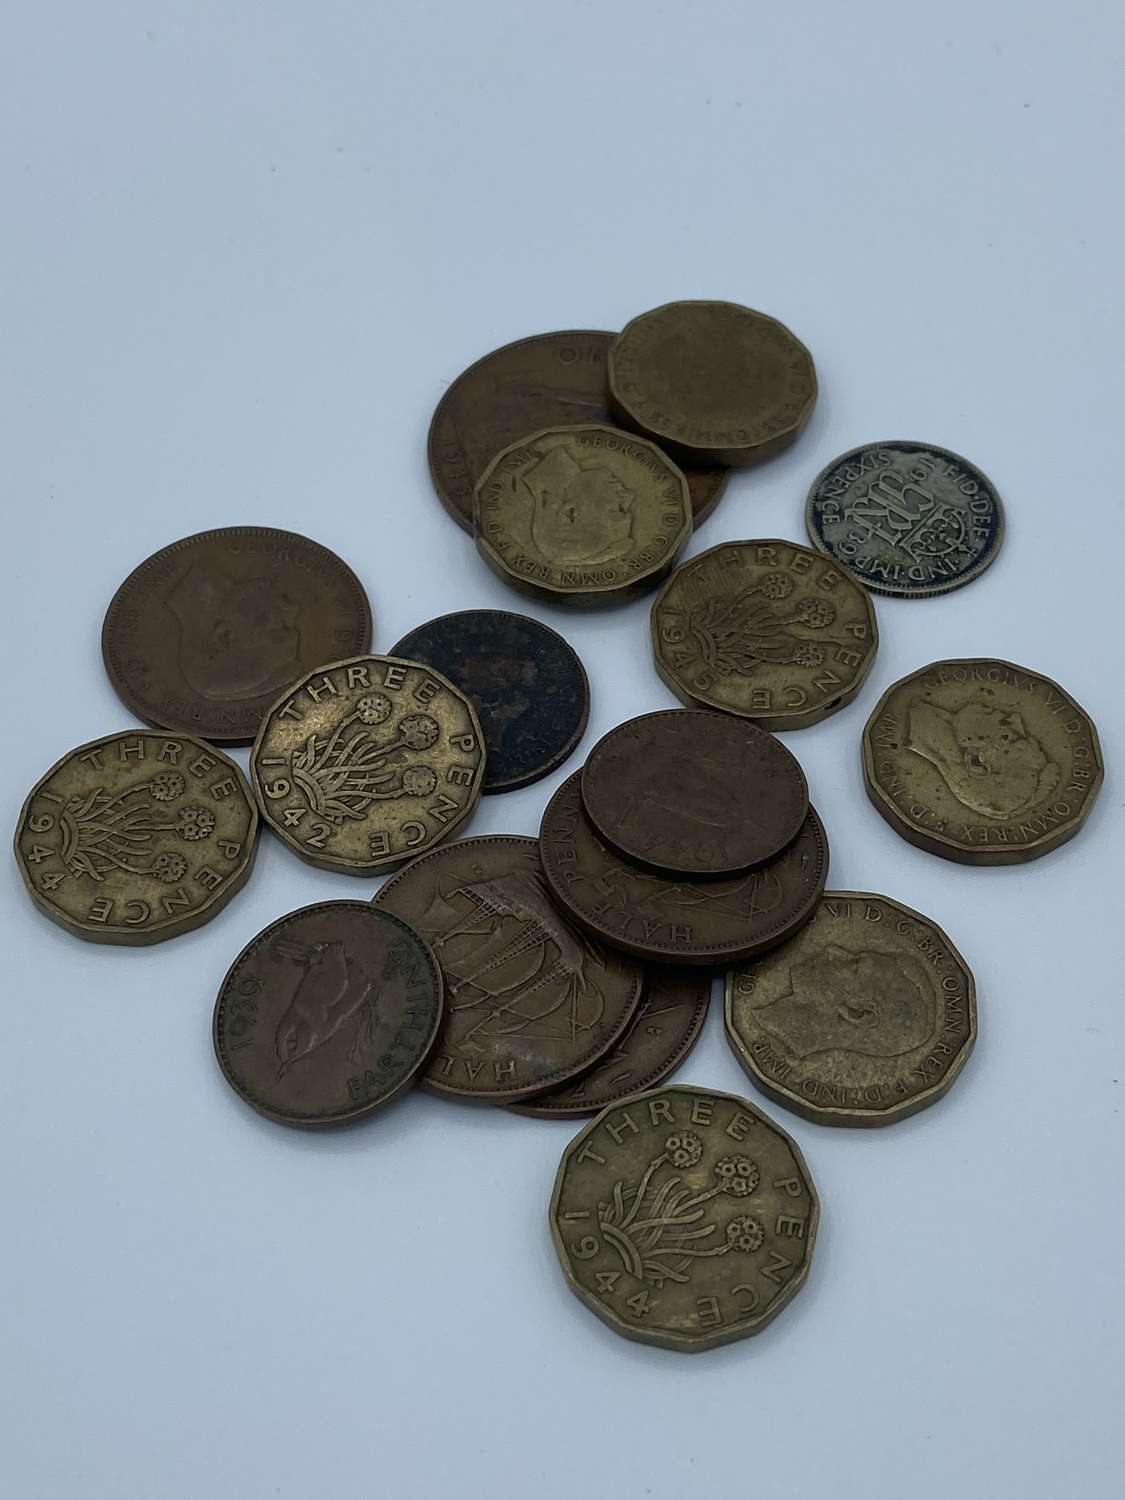 Joblot of WW1 & WW2 British Coin Currency Silvers Coppers etc